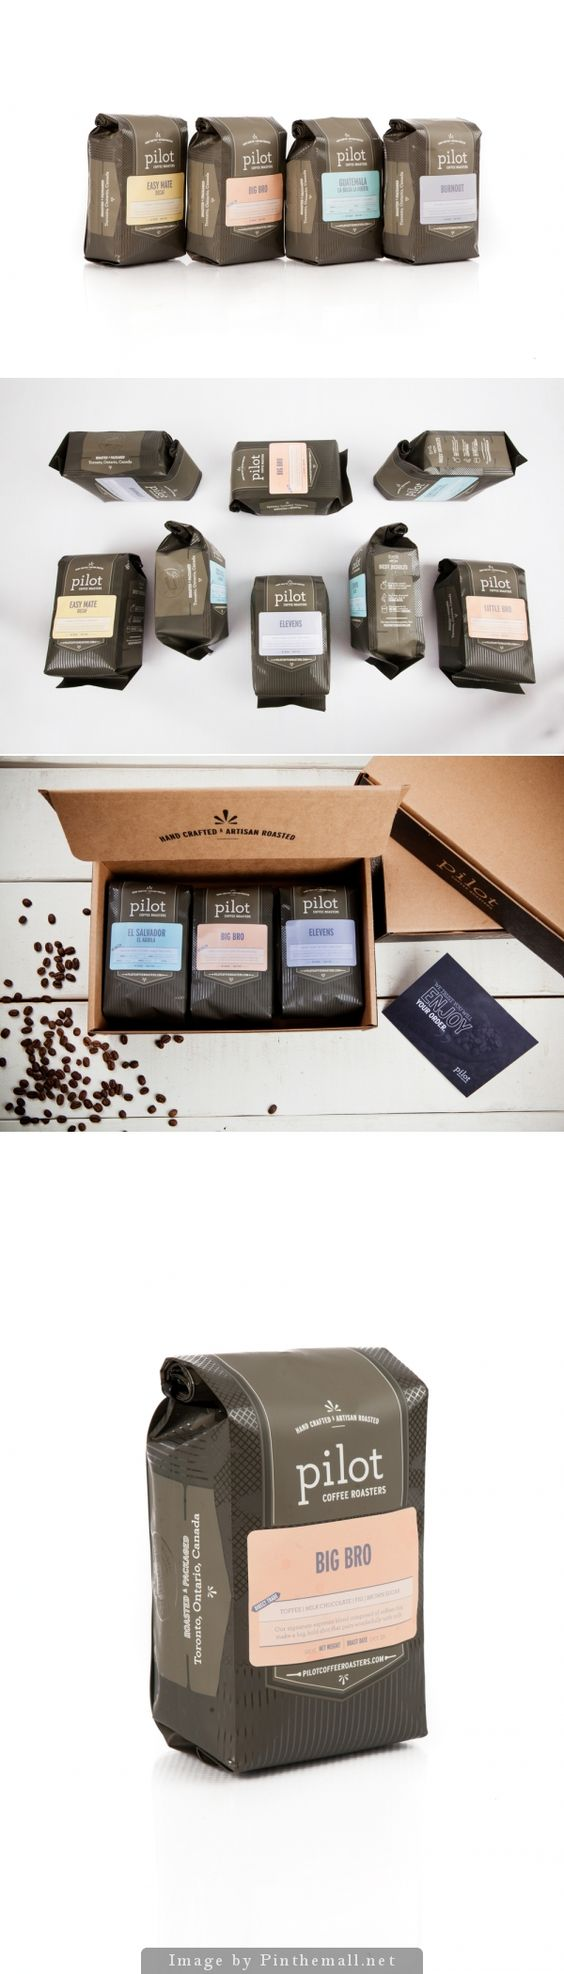 Pilot Coffee packaging - they sell this at the coffee shop by my house, and I never fail to look at it when I go in. The box your order comes in is lovely too